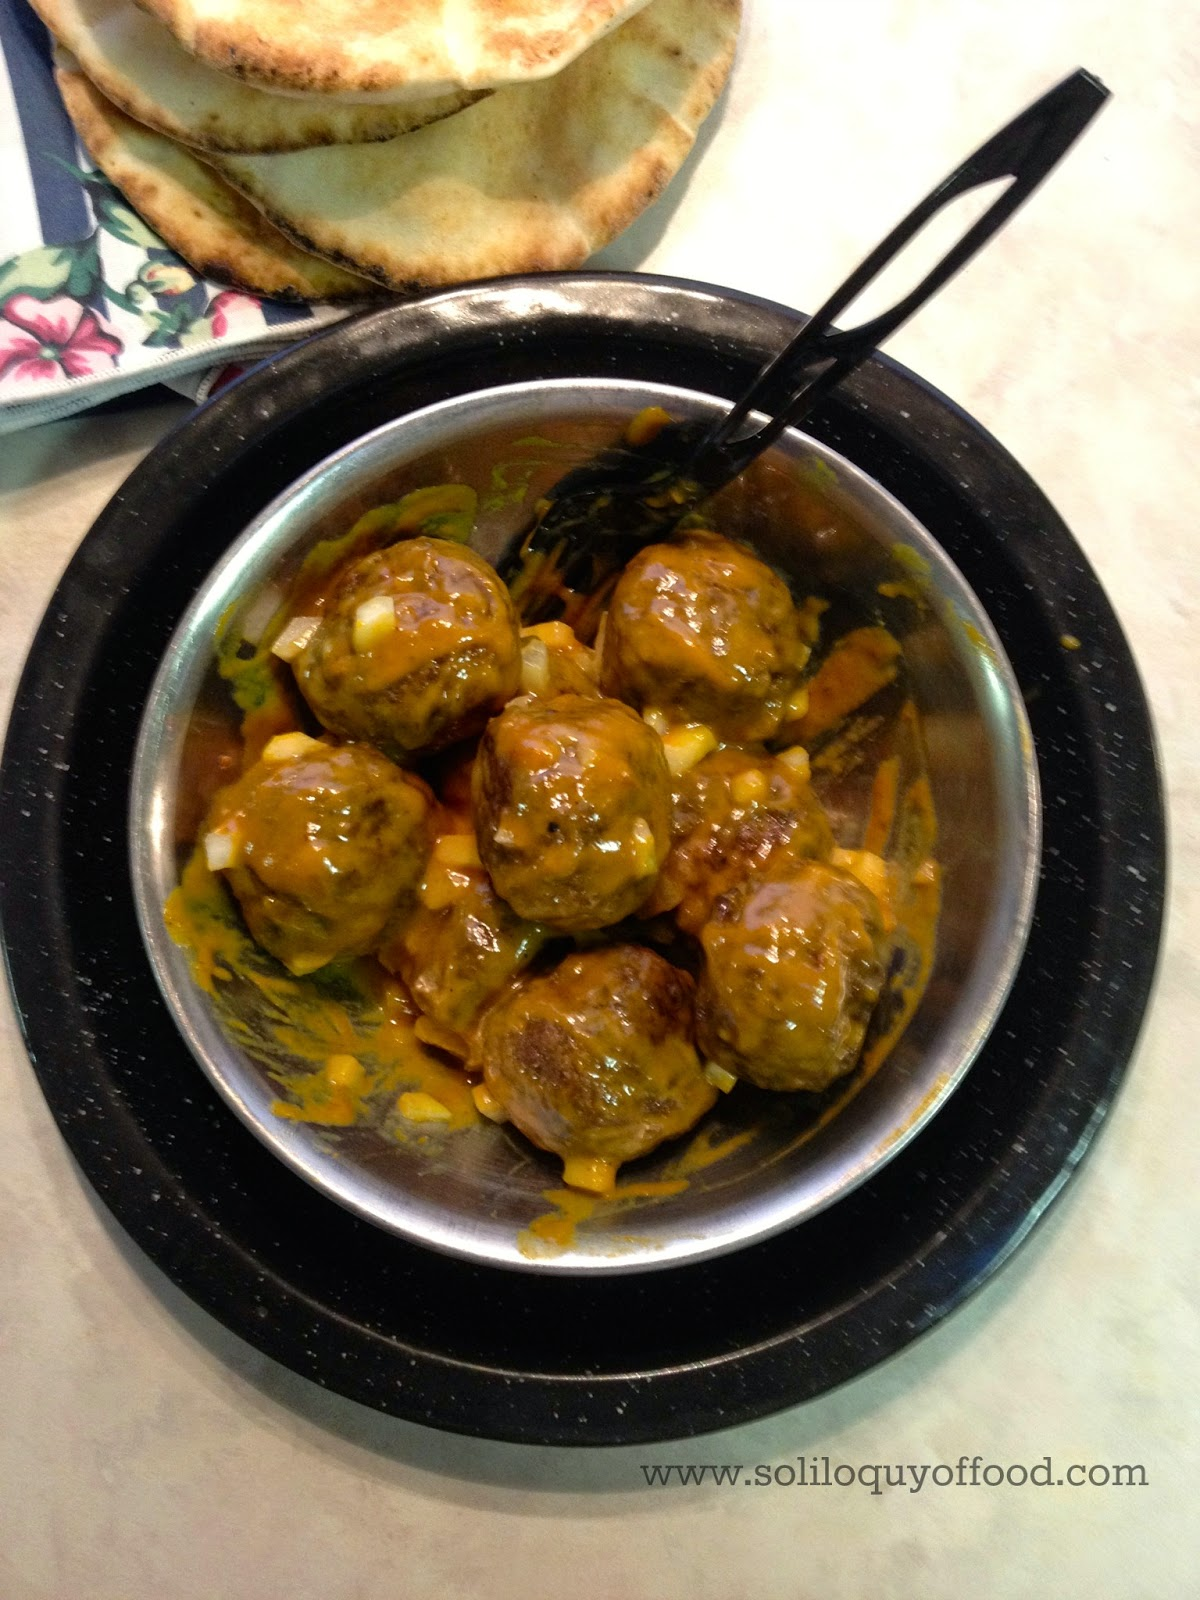 NY System Inspired: Meatballs with Mustard Glaze - www.soliloquyoffood.com